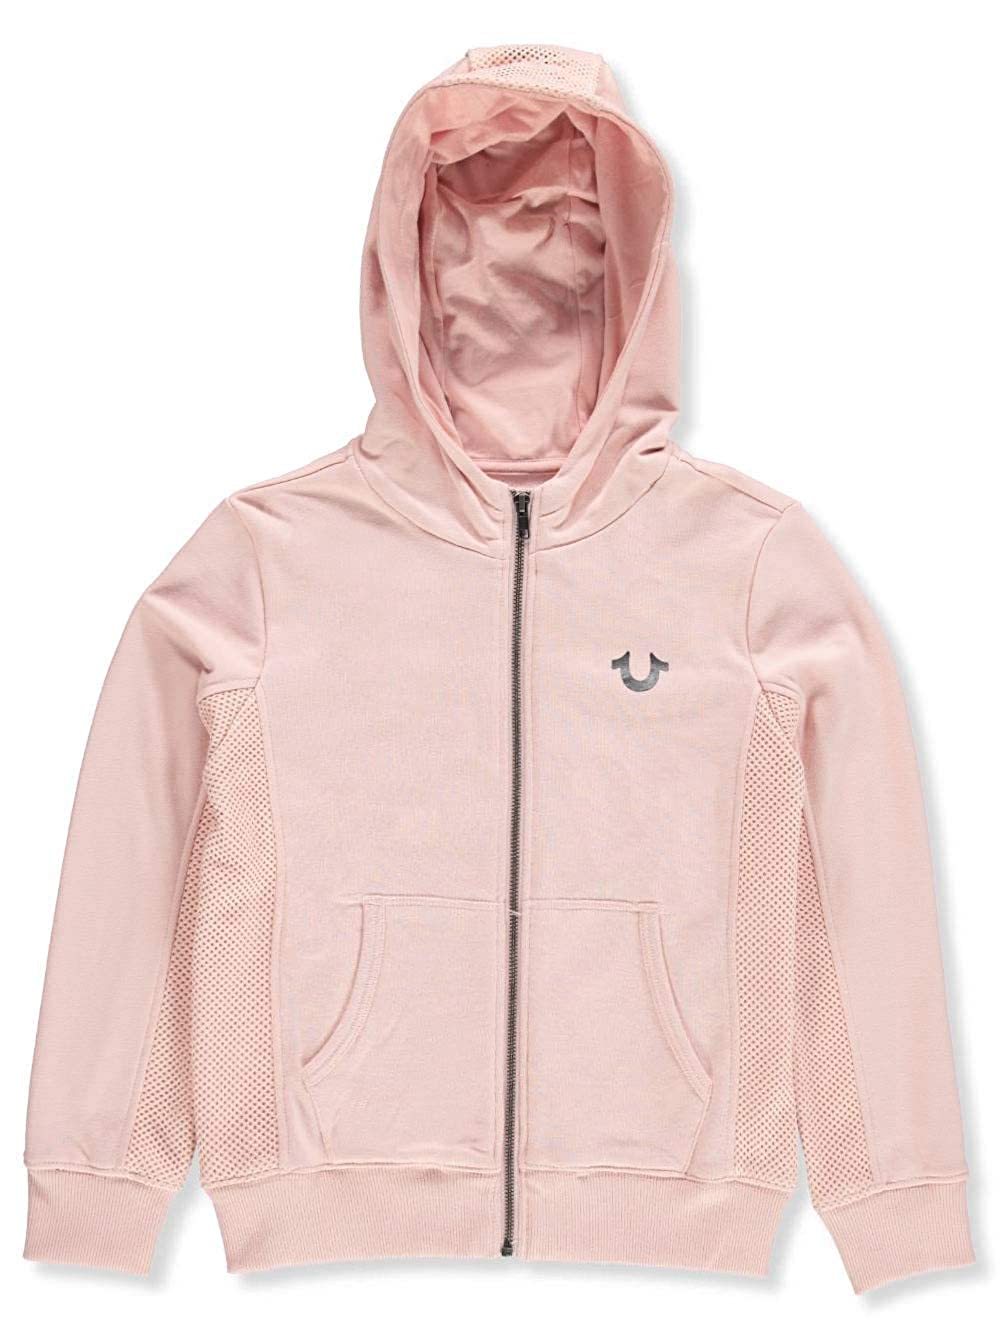 True Religion Girls' Hoodie